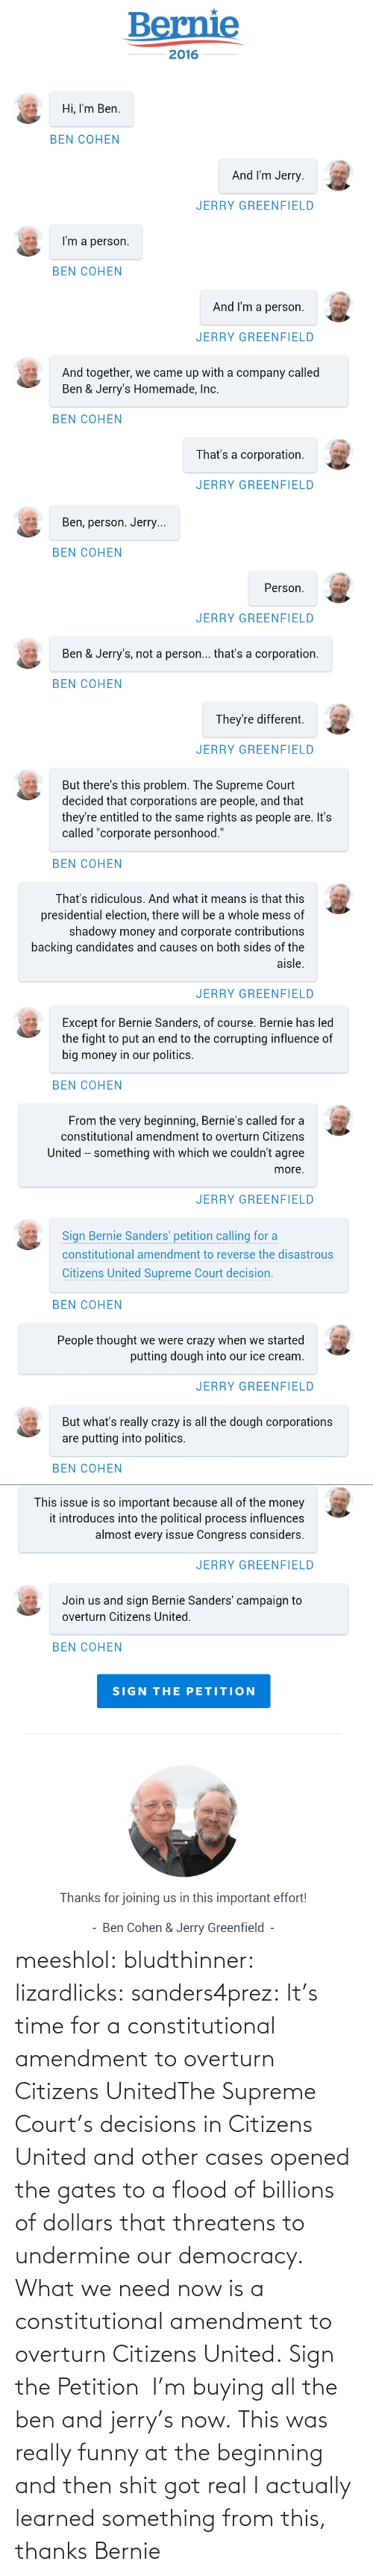 """Bj: Bernie  2016  Hi, I'm Ben.  BEN COHEN  And I'm Jerry.  JERRY GREENFIELD  I'm a person.  BEN COHEN  And I'm a person.  JERRY GREENFIELD  And together, we came up with a company called  Ben & Jerry's Homemade, Inc.  BEN COHEN  That's a corporation.  JERRY GREENFIELD   Ben, person. Jerry...  BEN COHEN  Person.  JERRY GREENFIELD  Ben & Jerry's, not a person... that's a corporation.  BEN COHEN  They're different.  JERRY GREENFIELD  But there's this problem. The Supreme Court  decided that corporations are people, and that  they're entitled to the same rights as people are. It's  called """"corporate personhood.""""  BEN COHEN  That's ridiculous. And what it means is that this  presidential election, there will be a whole mess of  shadowy money and corporate contributions  backing candidates and causes on both sides of the  aisle.  JERRY GREENFIELD   Except for Bernie Sanders, of course. Bernie has led  the fight to put an end to the corrupting influence of  big money in our politics.  BEN COHEN  From the very beginning, Bernie's called for a  constitutional amendment to overturn Citizens  United -- something with which we couldn't agree  more.  JERRY GREENFIELD  Sign Bernie Sanders' petition calling for a  constitutional amendment to reverse the disastrous  Citizens United Supreme Court decision.  BEN COHEN  People thought we were crazy when we started  putting dough into our ice cream.  JERRY GREENFIELD  But what's really crazy is all the dough corporations  are putting into politics.  BEN COHEN   This issue is so important because all of the money  it introduces into the political process influences  almost every issue Congress considers.  JERRY GREENFIELD  Join us and sign Bernie Sanders' campaign to  overturn Citizens United.  BEN COHEN  SIGN THE PETITION  Thanks for joining us in this important effort!  Ben Cohen & Jerry Greenfield - meeshlol:  bludthinner:  lizardlicks:  sanders4prez:  It's time for a constitutional amendment to overturn Citizens UnitedThe Supreme Co"""